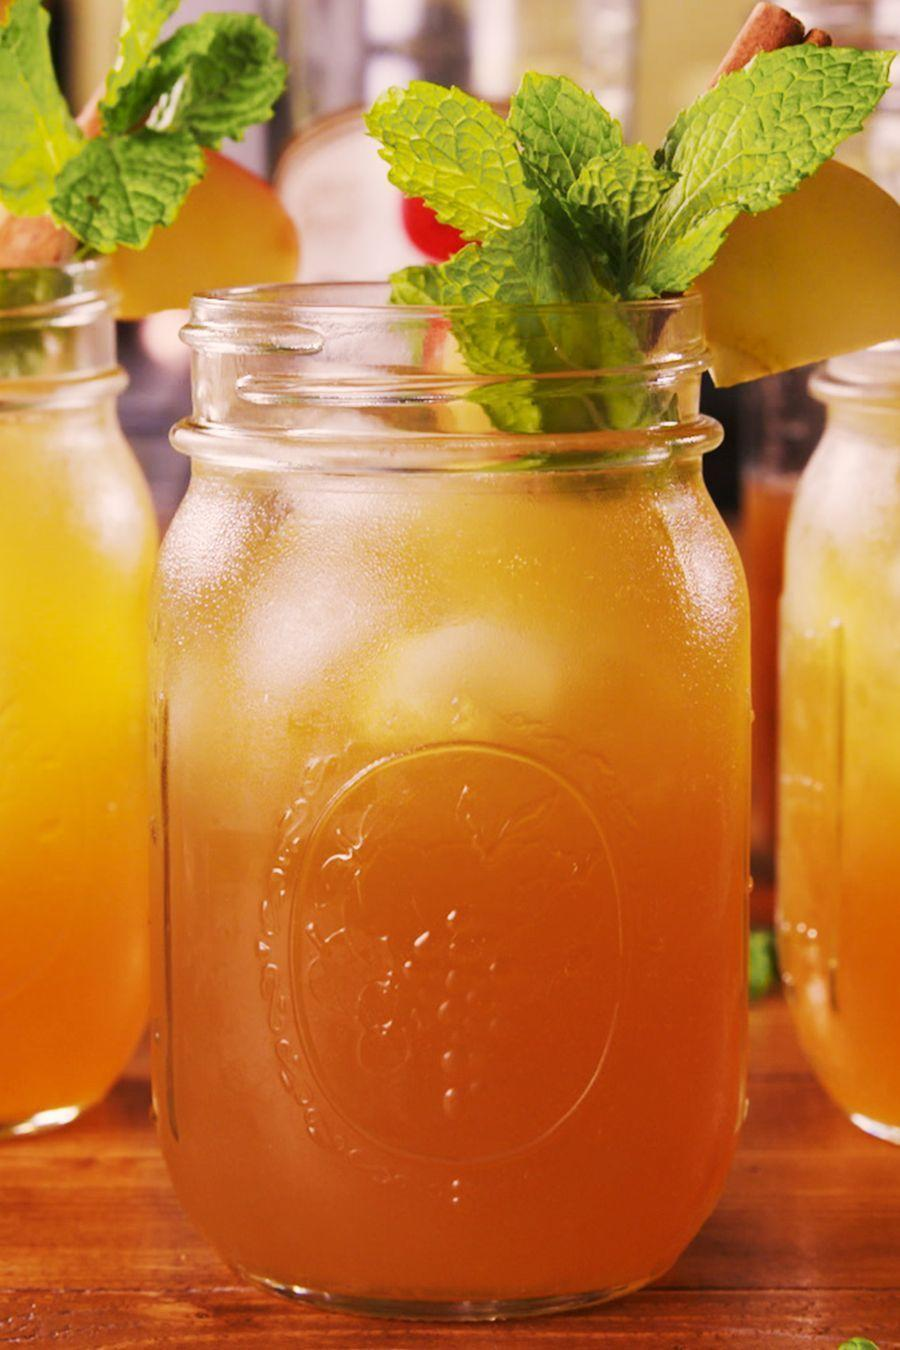 "<p>Mint + cider is surprisingly refreshing.</p><p>Get the recipe from <a href=""https://www.delish.com/cooking/a23581354/apple-cider-mojitos-recipe/"" rel=""nofollow noopener"" target=""_blank"" data-ylk=""slk:Delish"" class=""link rapid-noclick-resp"">Delish</a>.</p>"